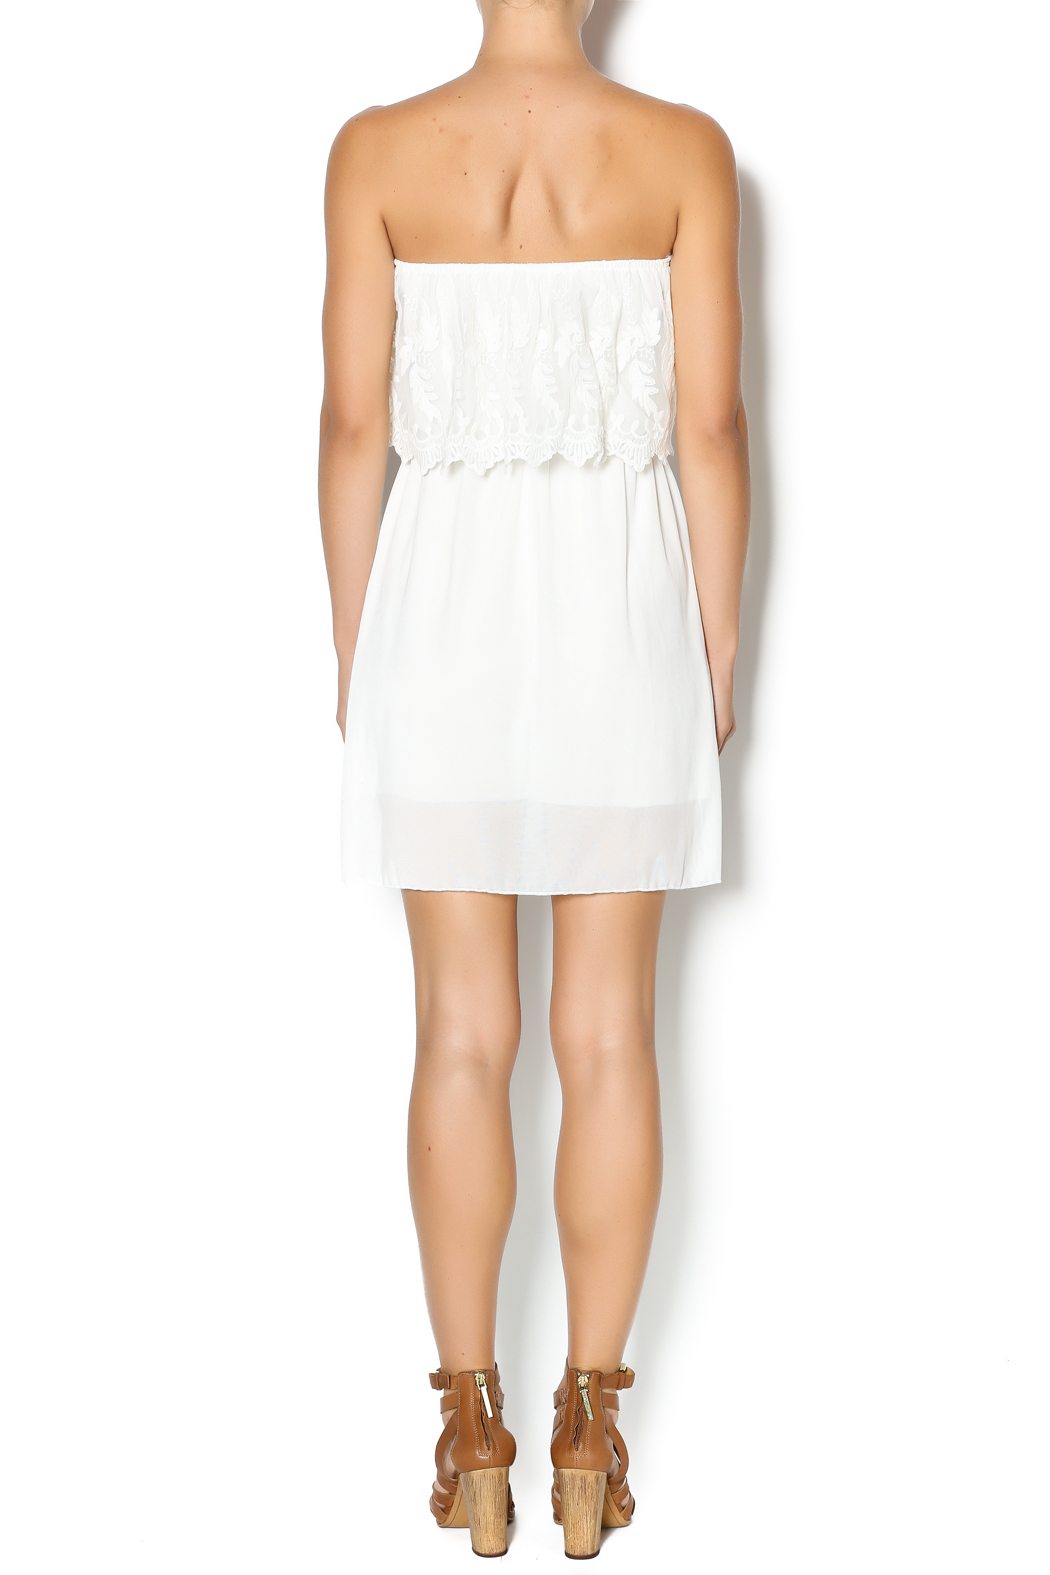 Manito Ivory Lace Strapless Dress - Side Cropped Image